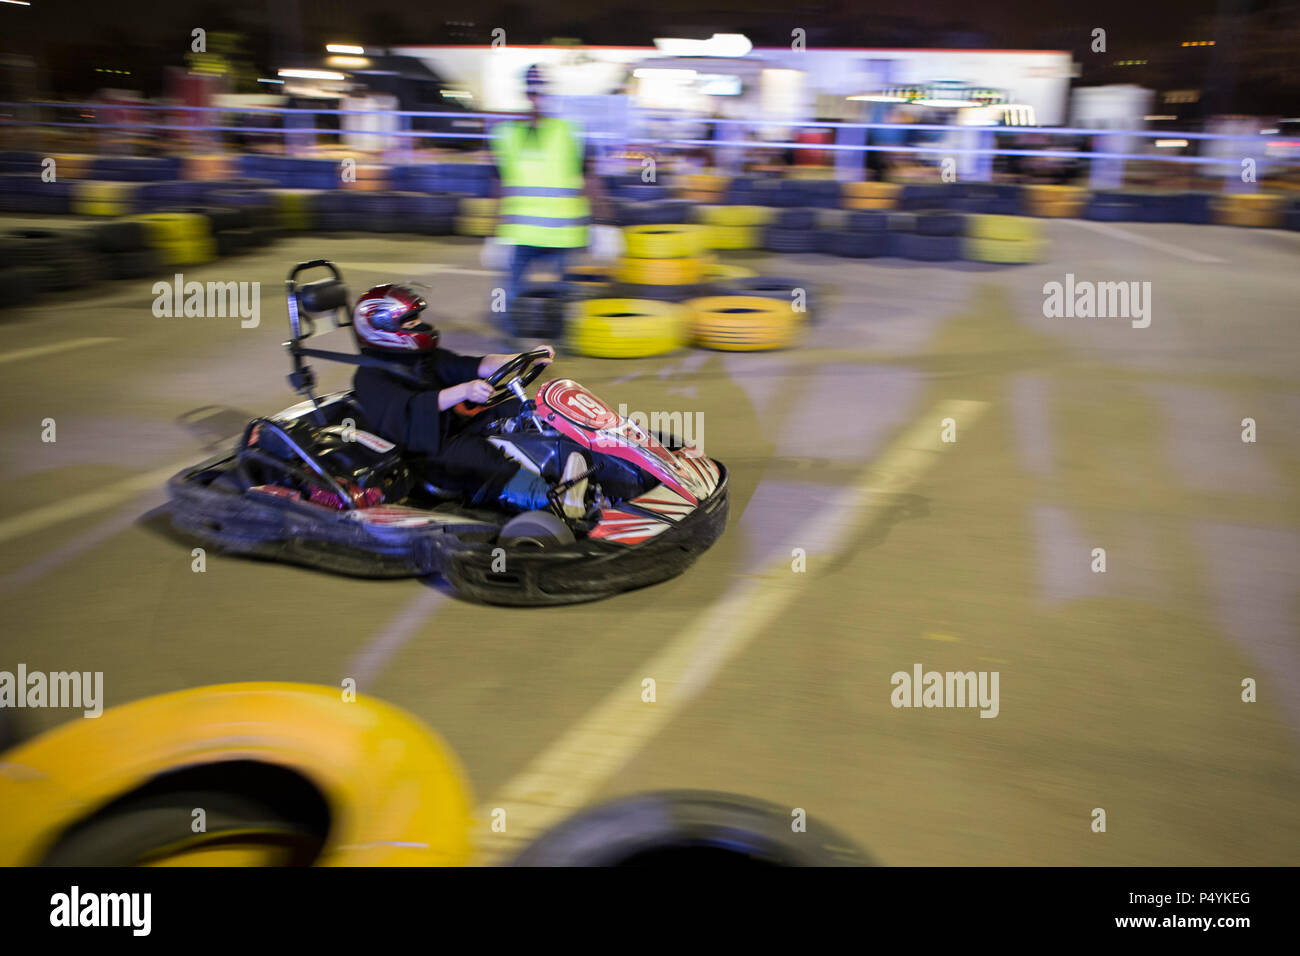 kart over arabia Riyadh, Saudi Arabia. 23rd June, 2018. A Saudi woman drives a go  kart over arabia